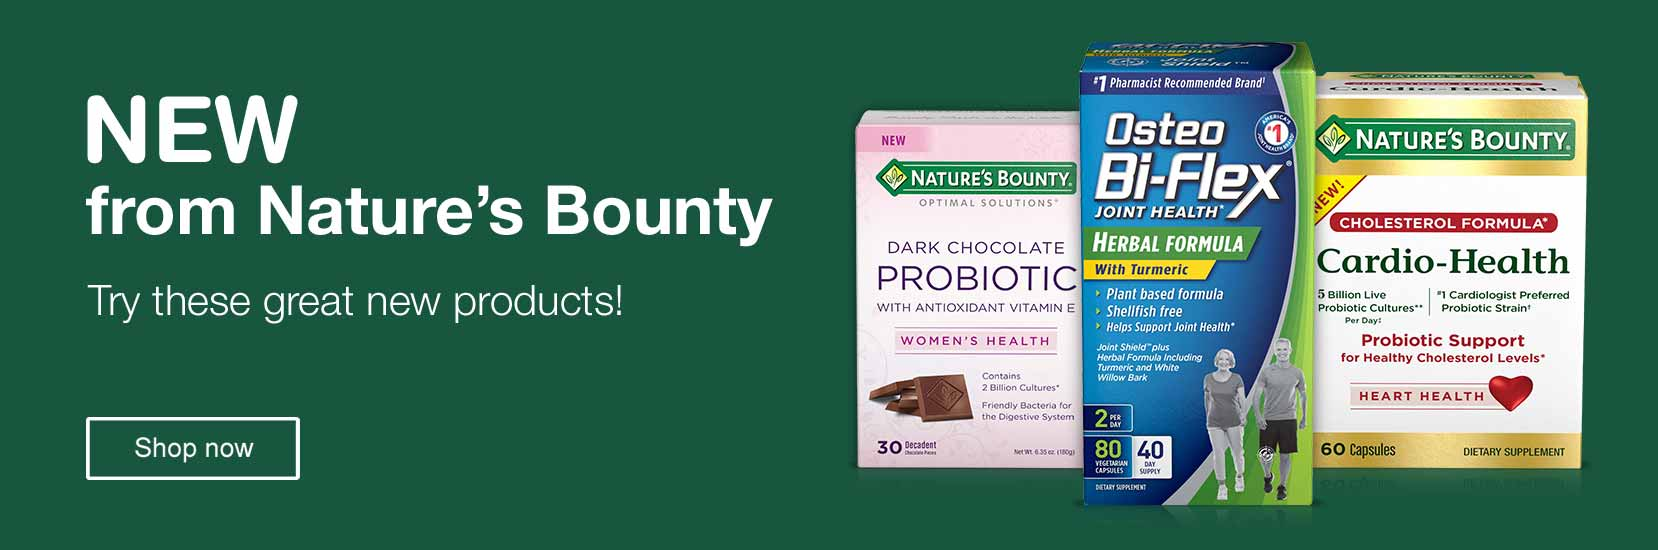 NEW from Nature's Bounty. Try these great new products! Shop now.